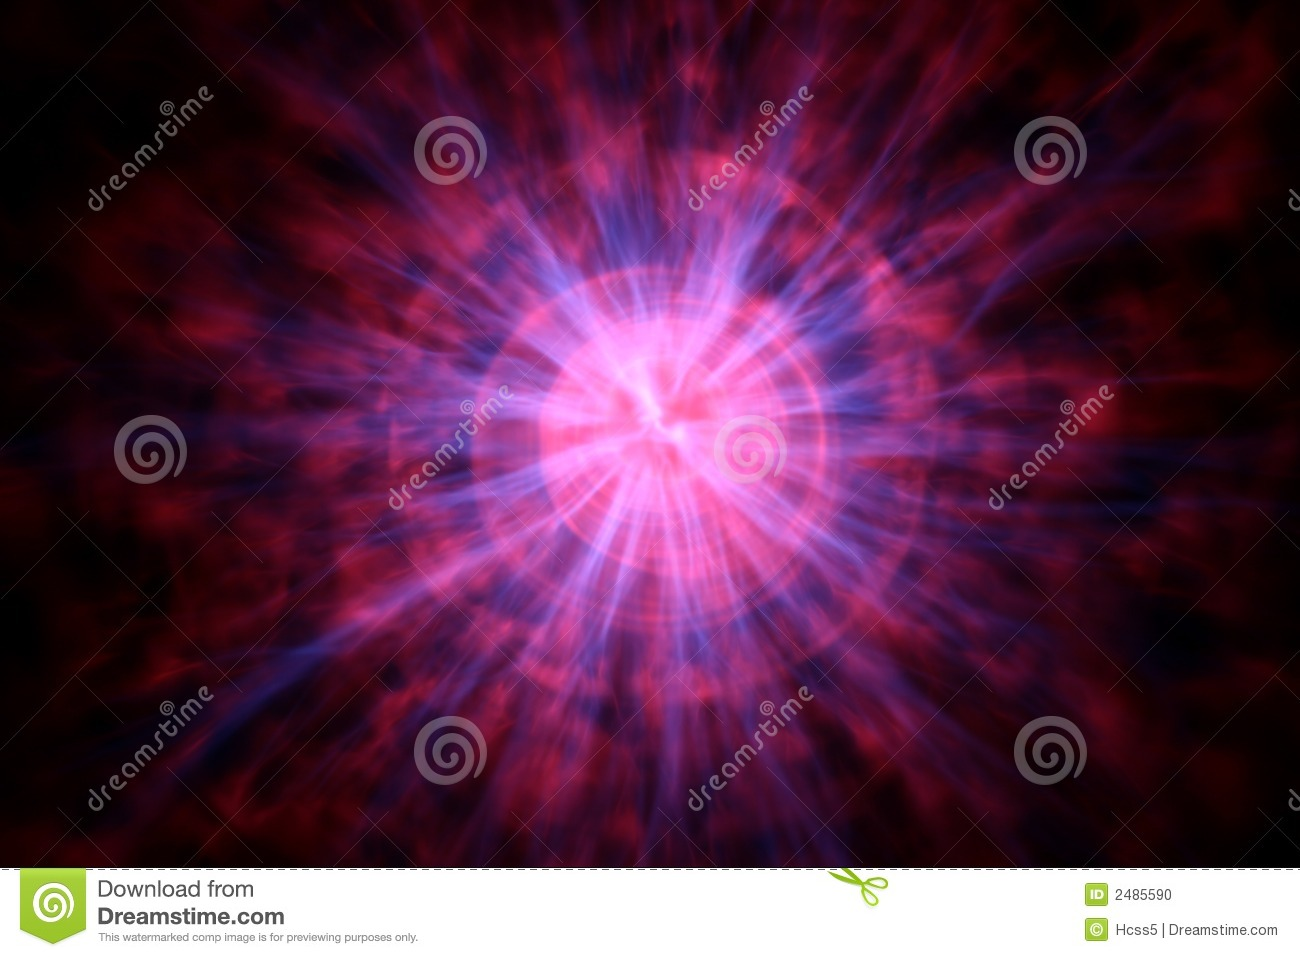 Plasma Ball Stock Photo.